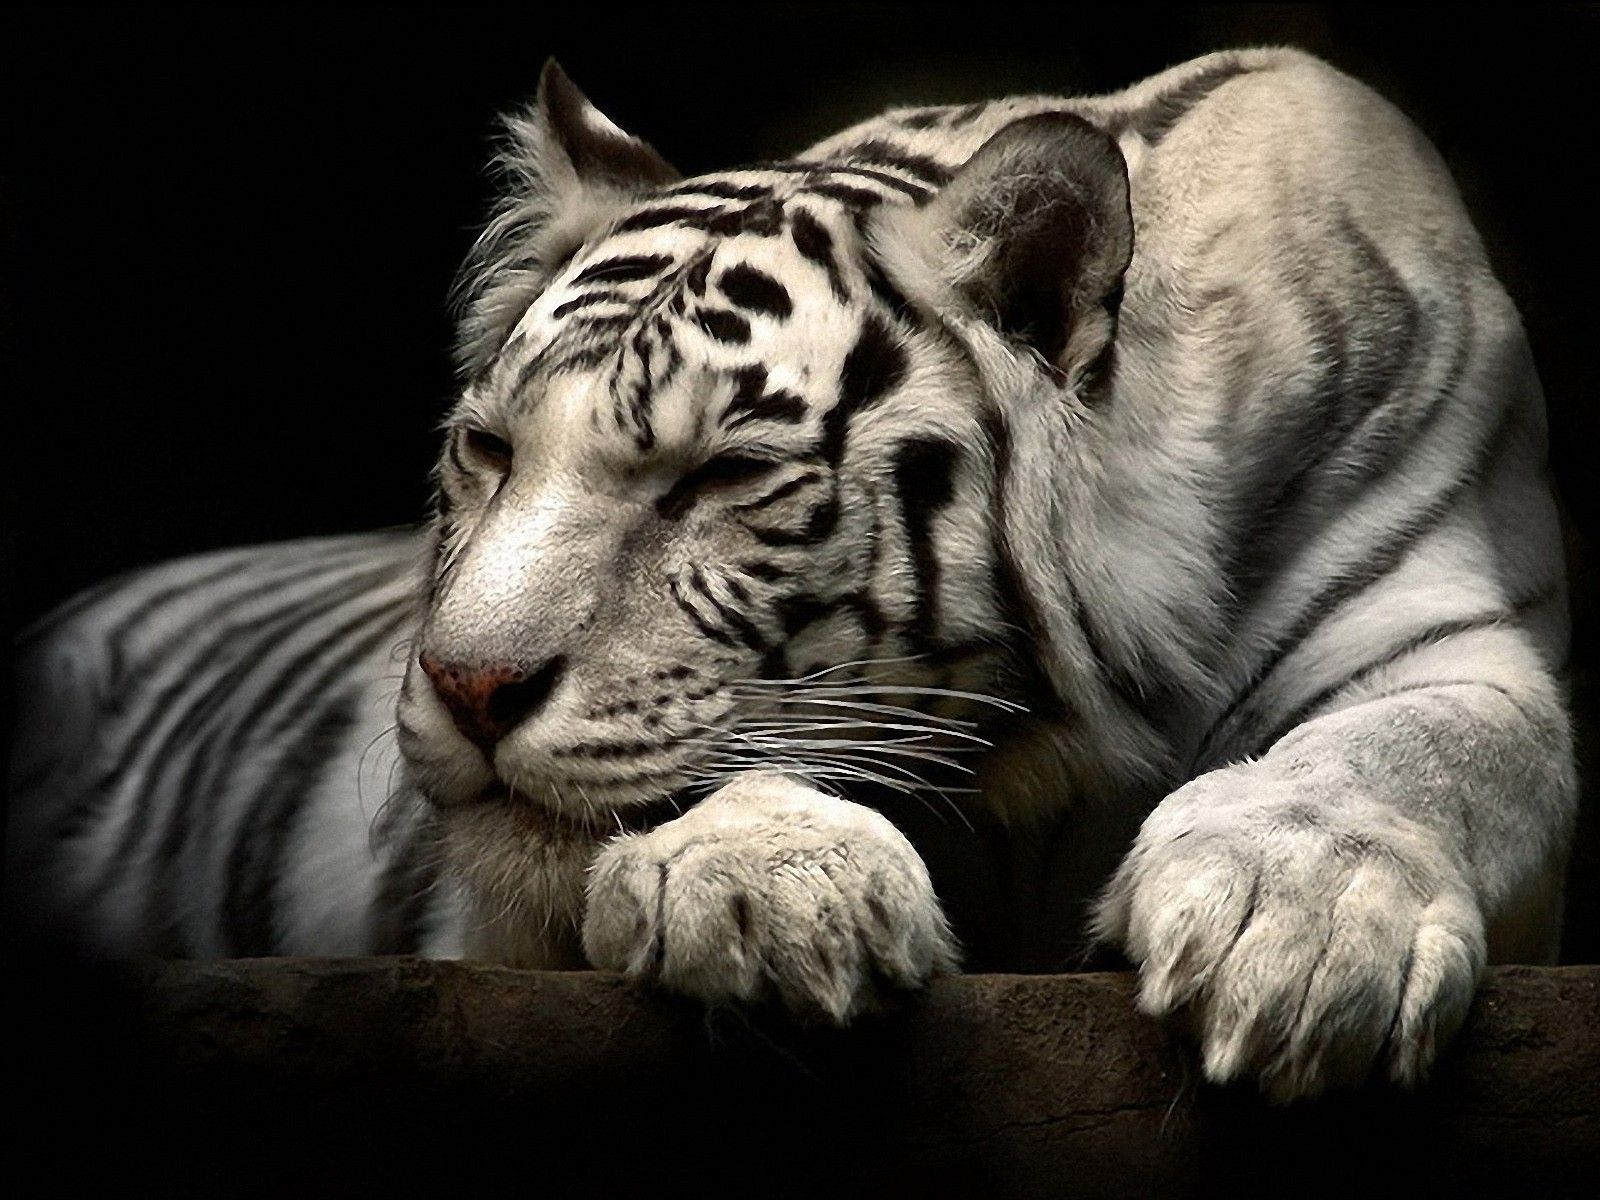 Popular Wallpaper Mobile Tiger - 532733b253a6fde4cf5f6f0a325aae75  2018_101734.jpg